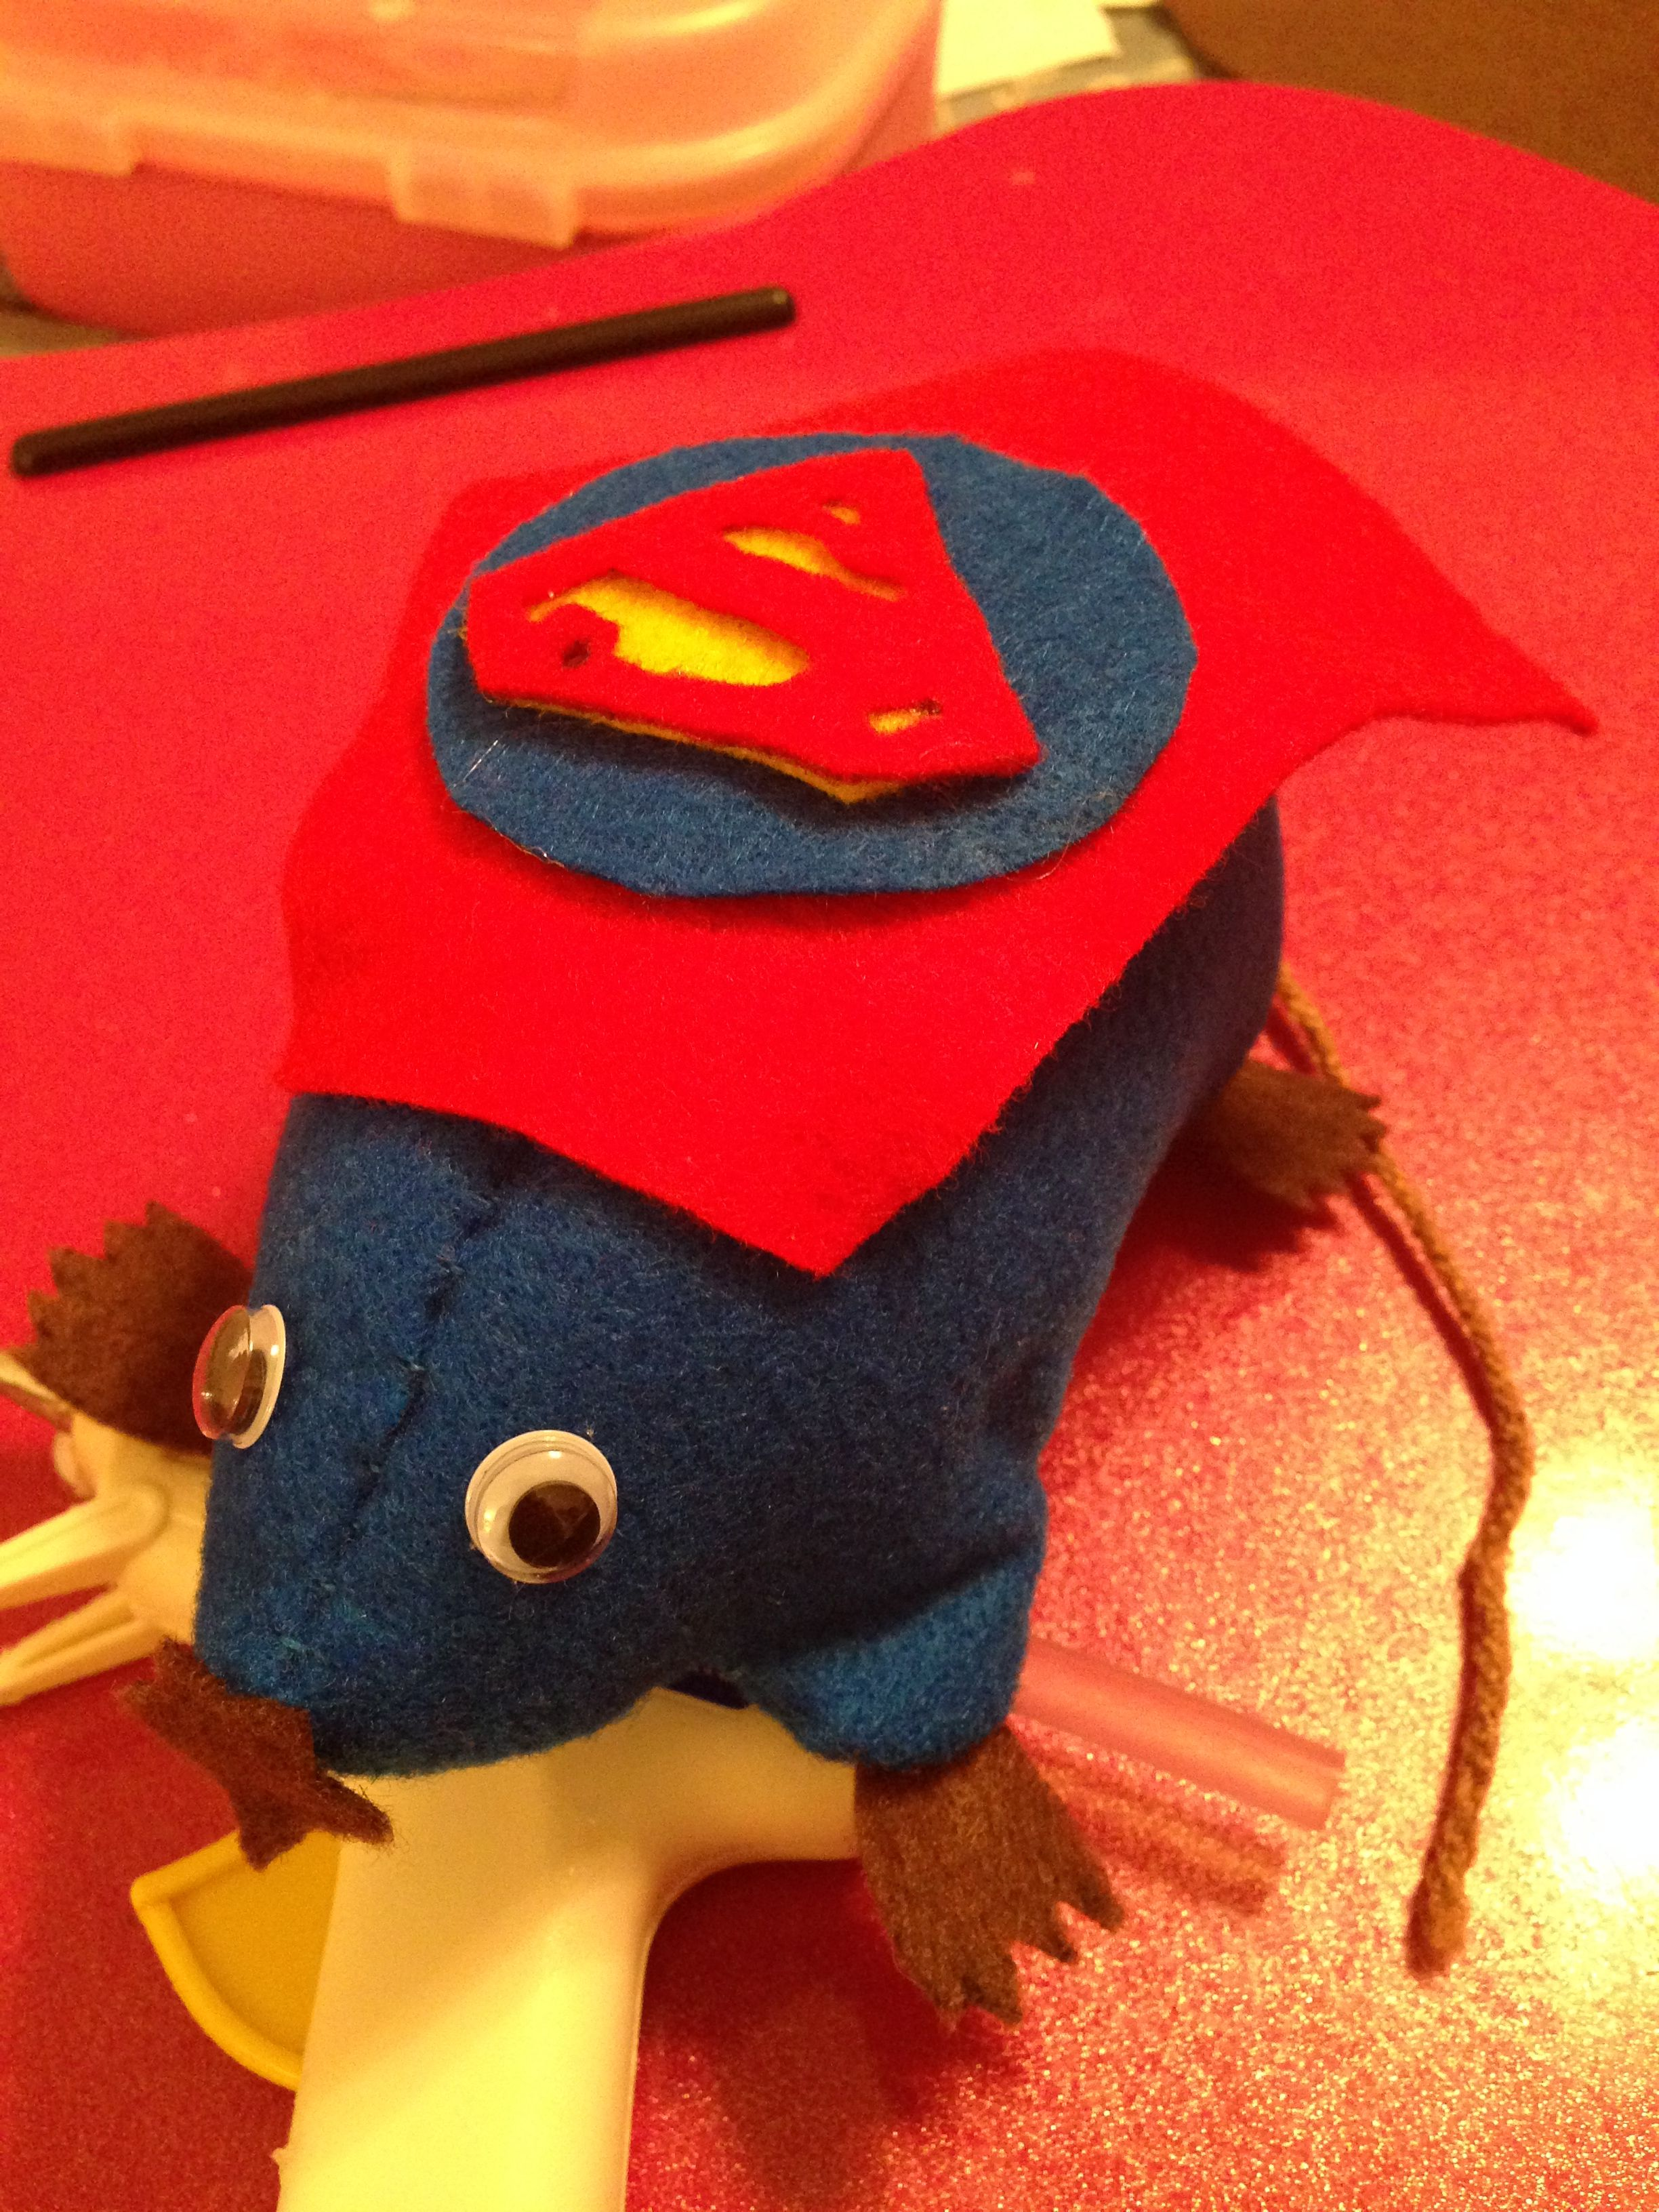 molebama 2013 mole day project for chemistry stuffed mole made super mold chemistry project